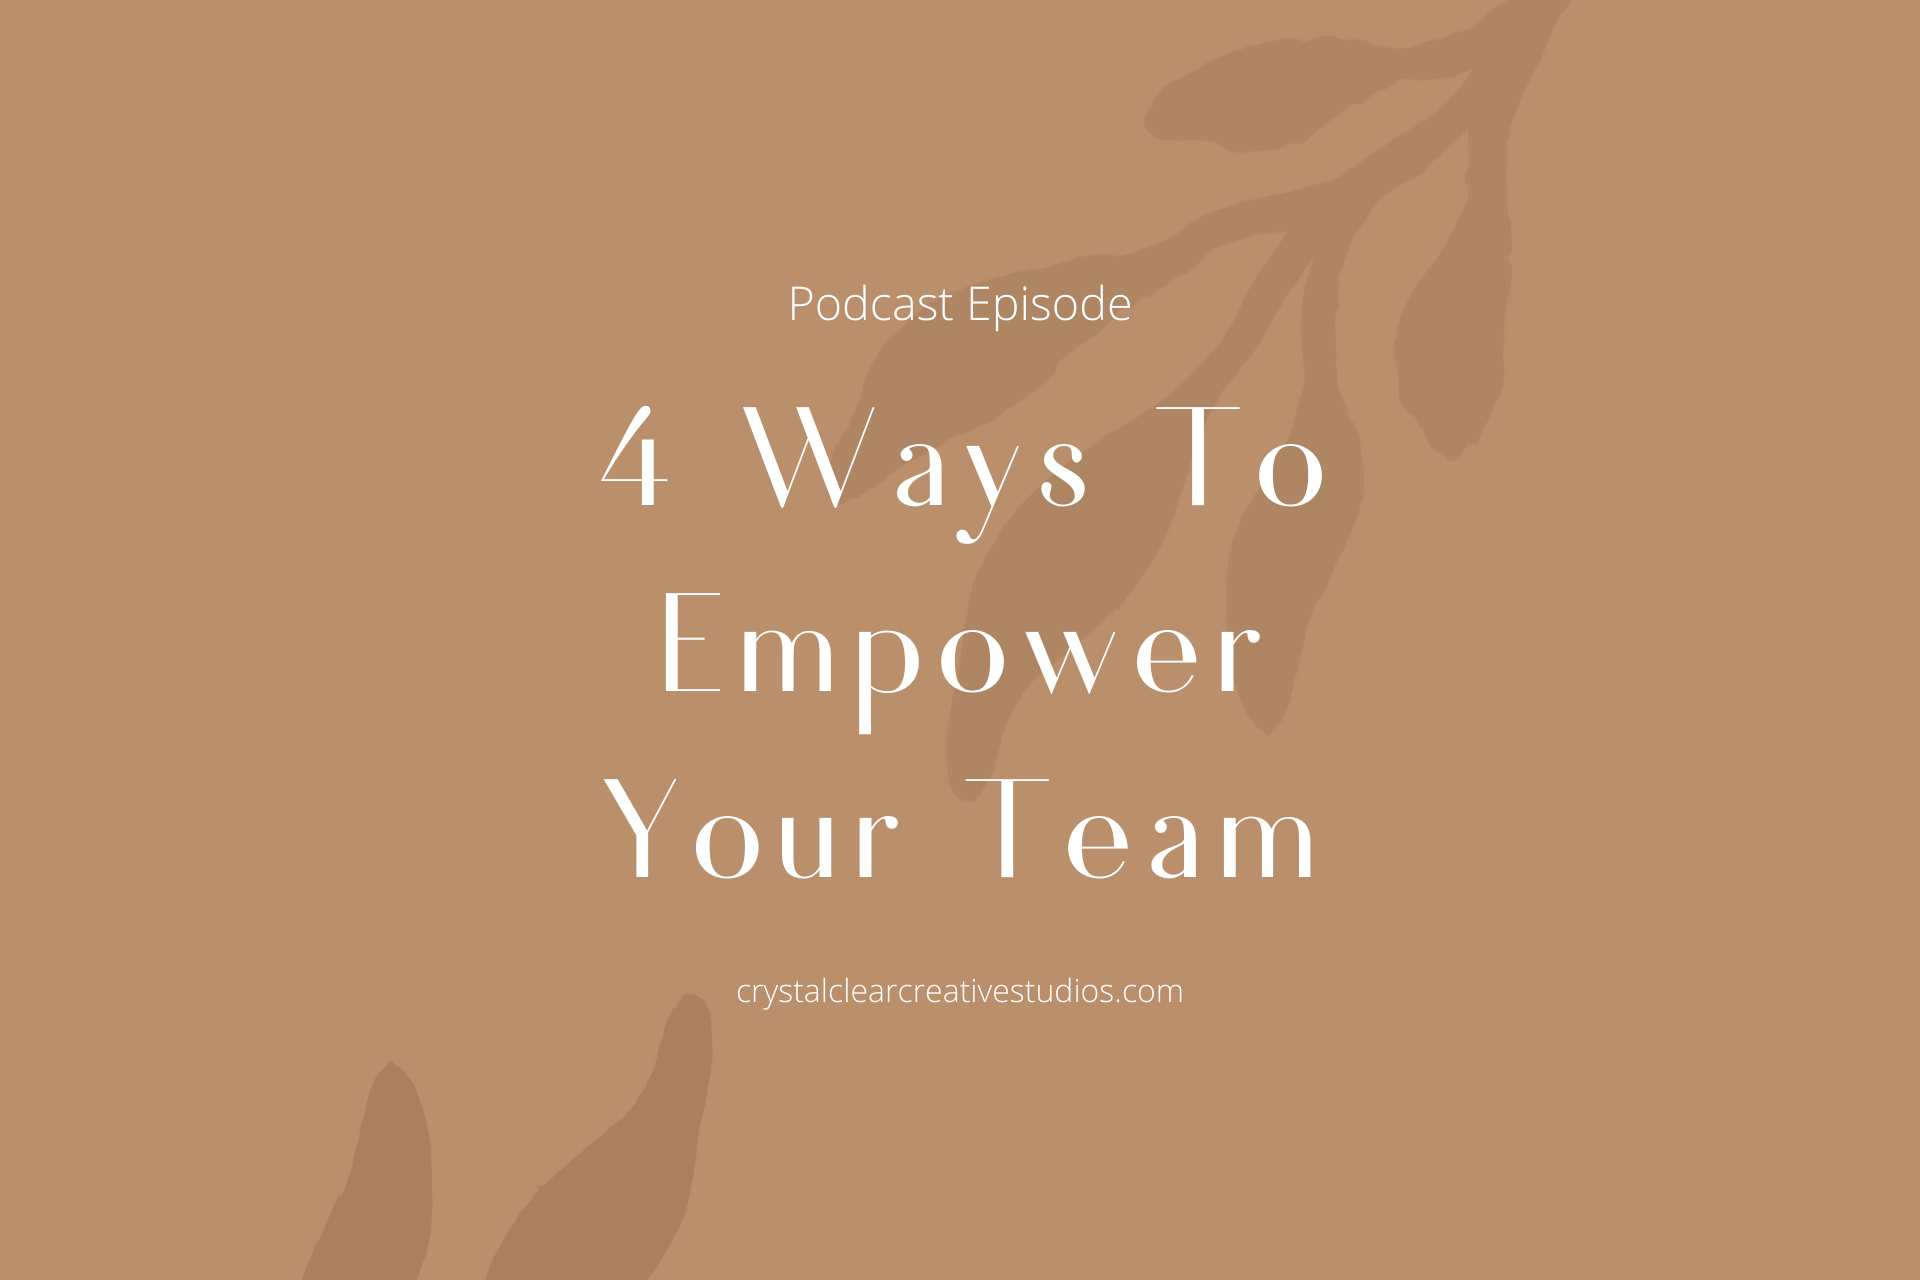 4 Ways To Empower Your Team